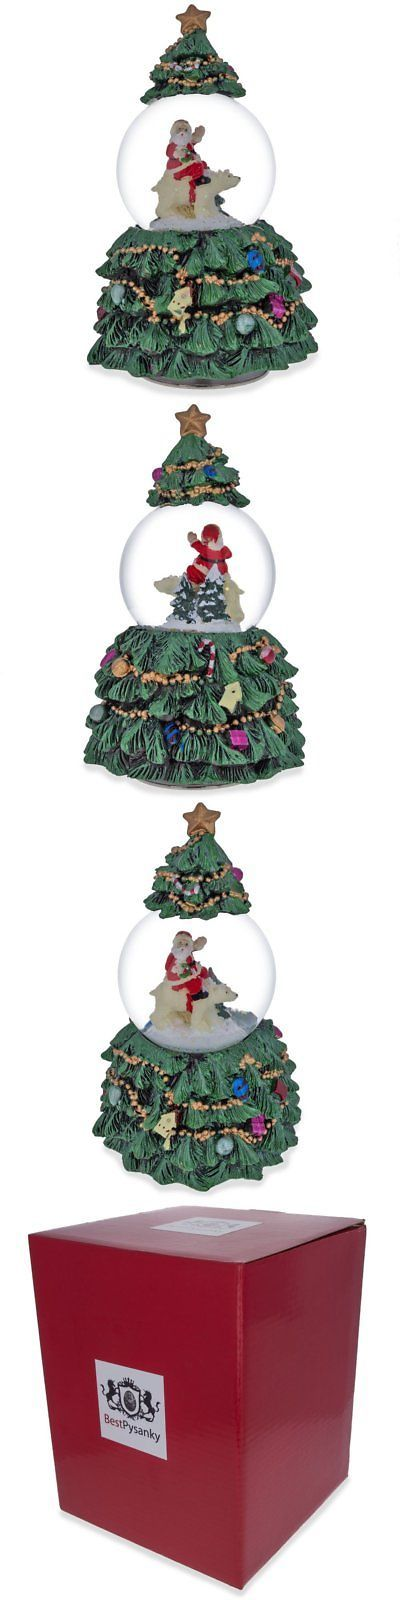 Snow Globes 156890: 6 Santa And Polar Bear In Rotating Christmas Tree Musical Snow Globe -> BUY IT NOW ONLY: $47.16 on eBay!